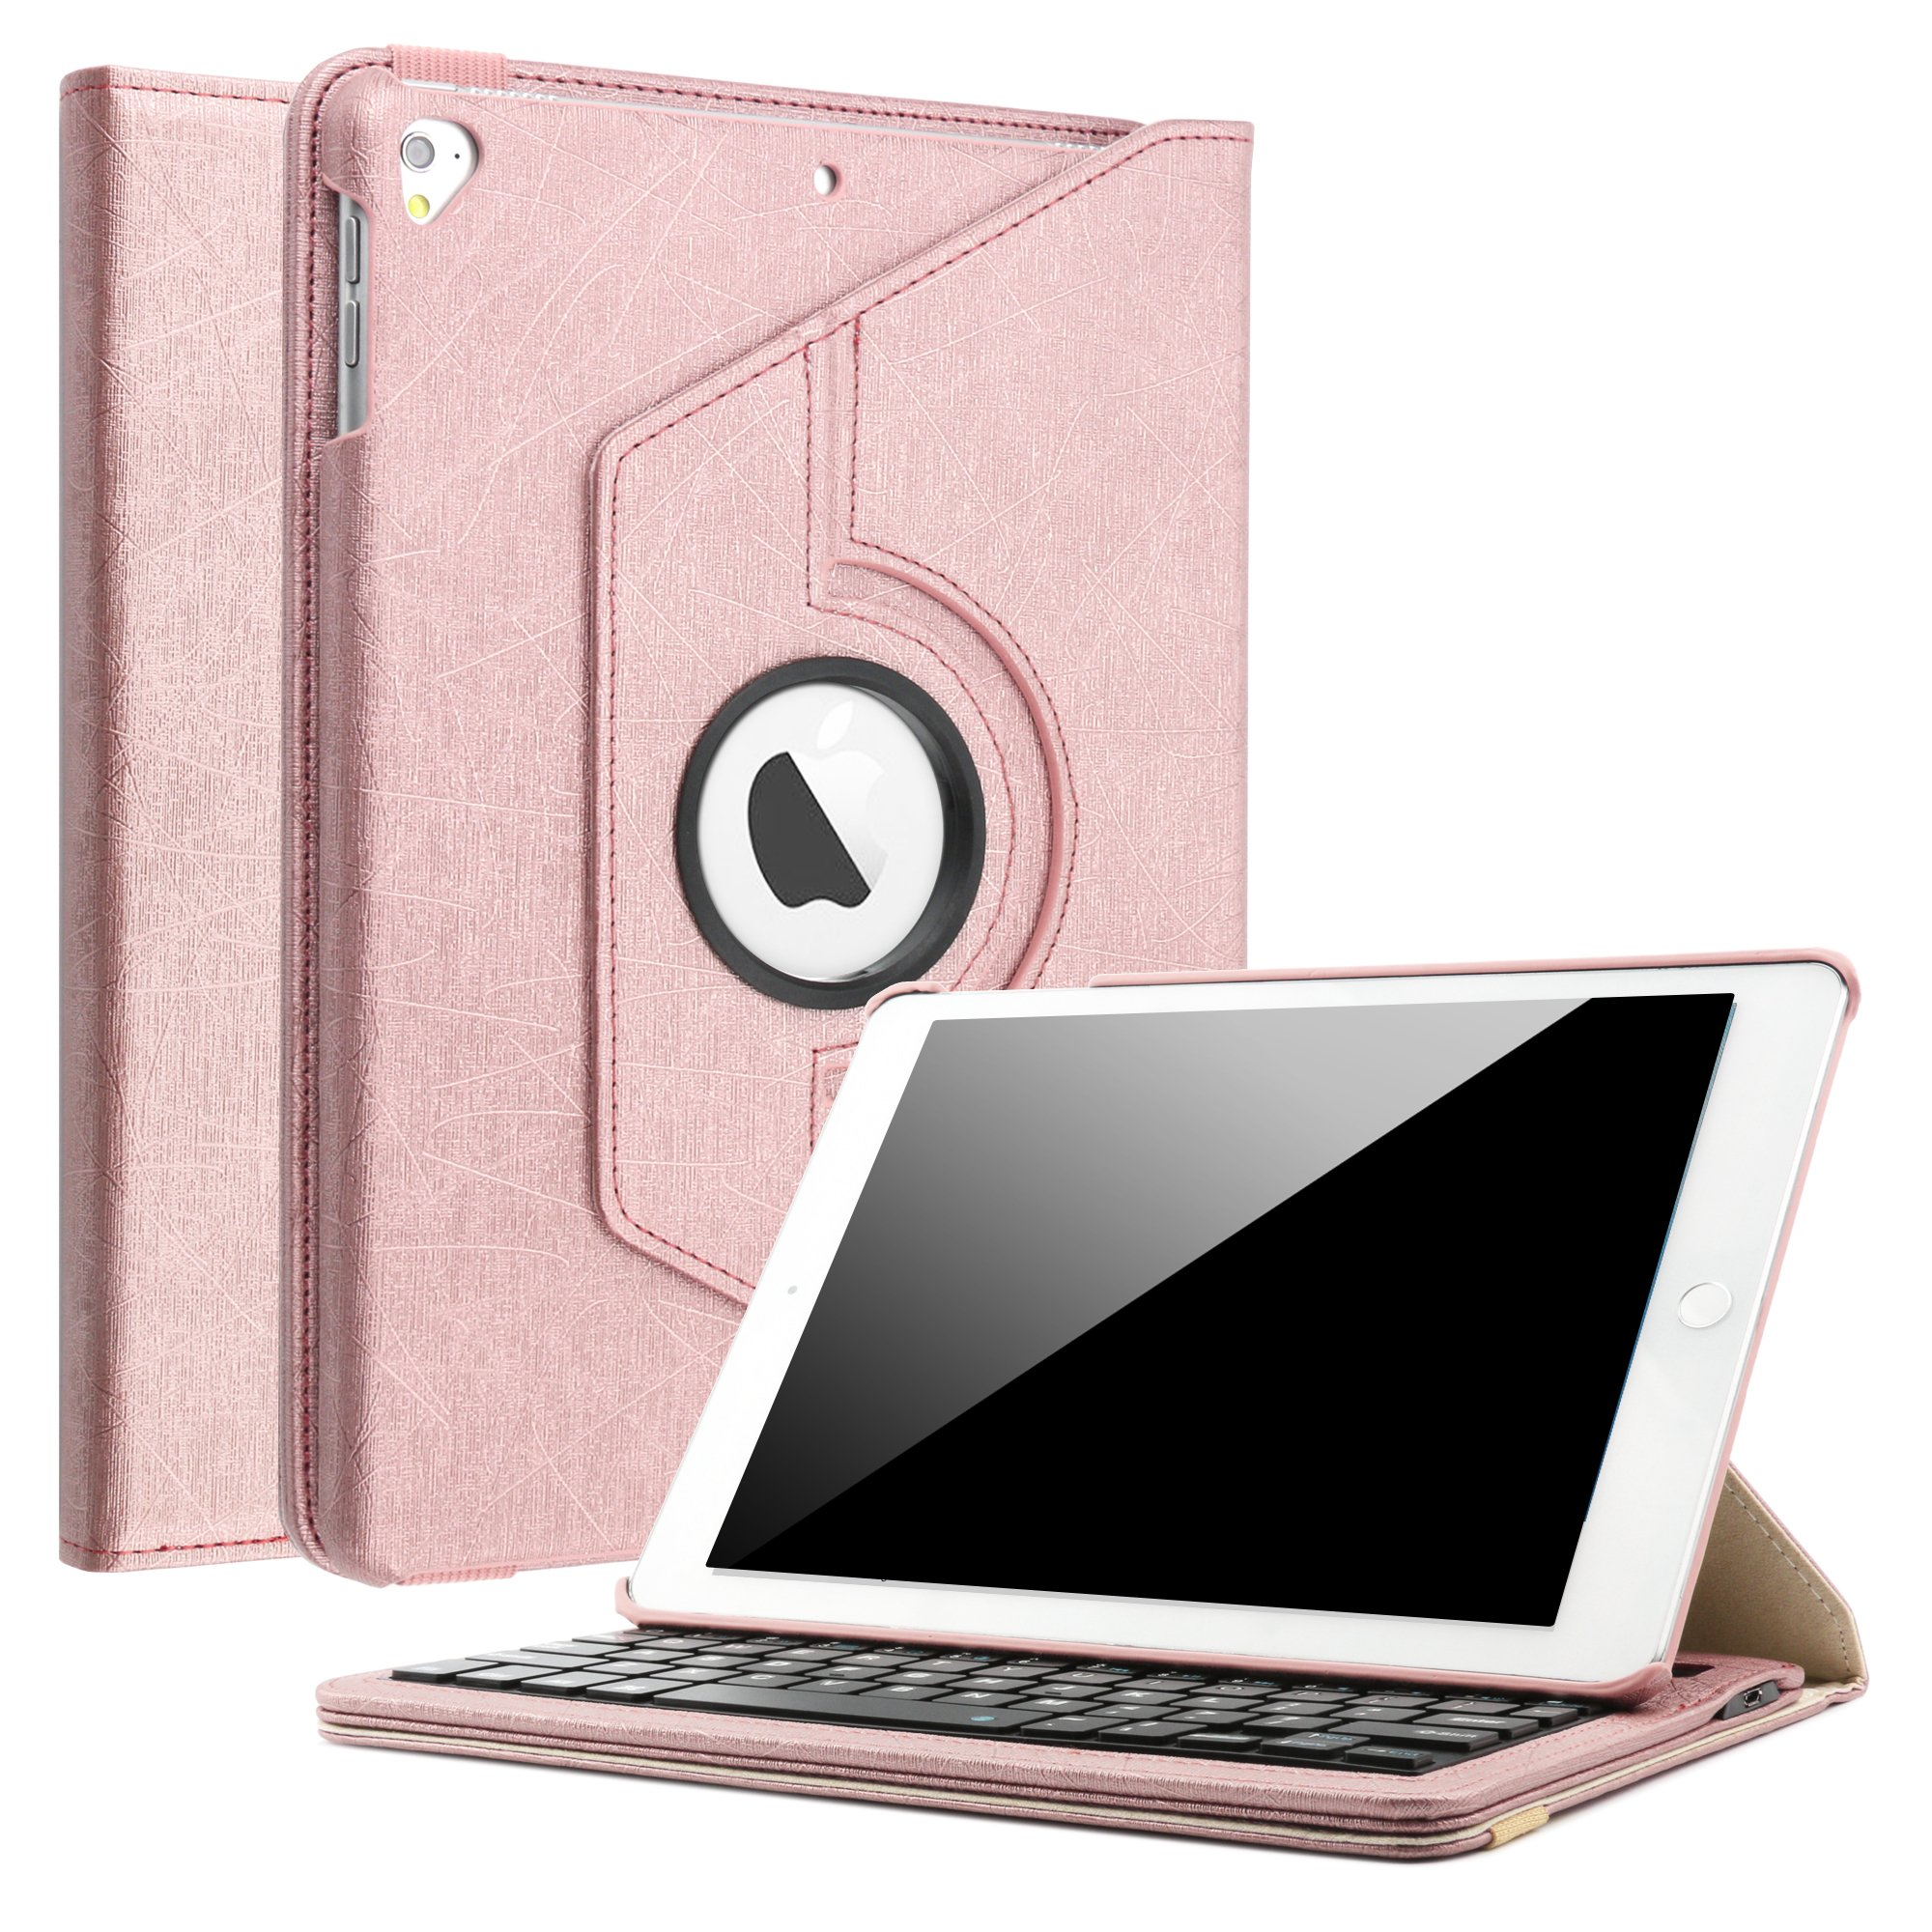 iPad 9.7 2018 2017/iPad Pro 9.7/iPad Air 2/iPad Air 1 Keyboard Case,Boriyuan 360 Degree Rotating Stand PU Leather Smart Cover with Detachable Wireless Bluetooth Keyboard for iPad 9.7 inch- Rose Gold